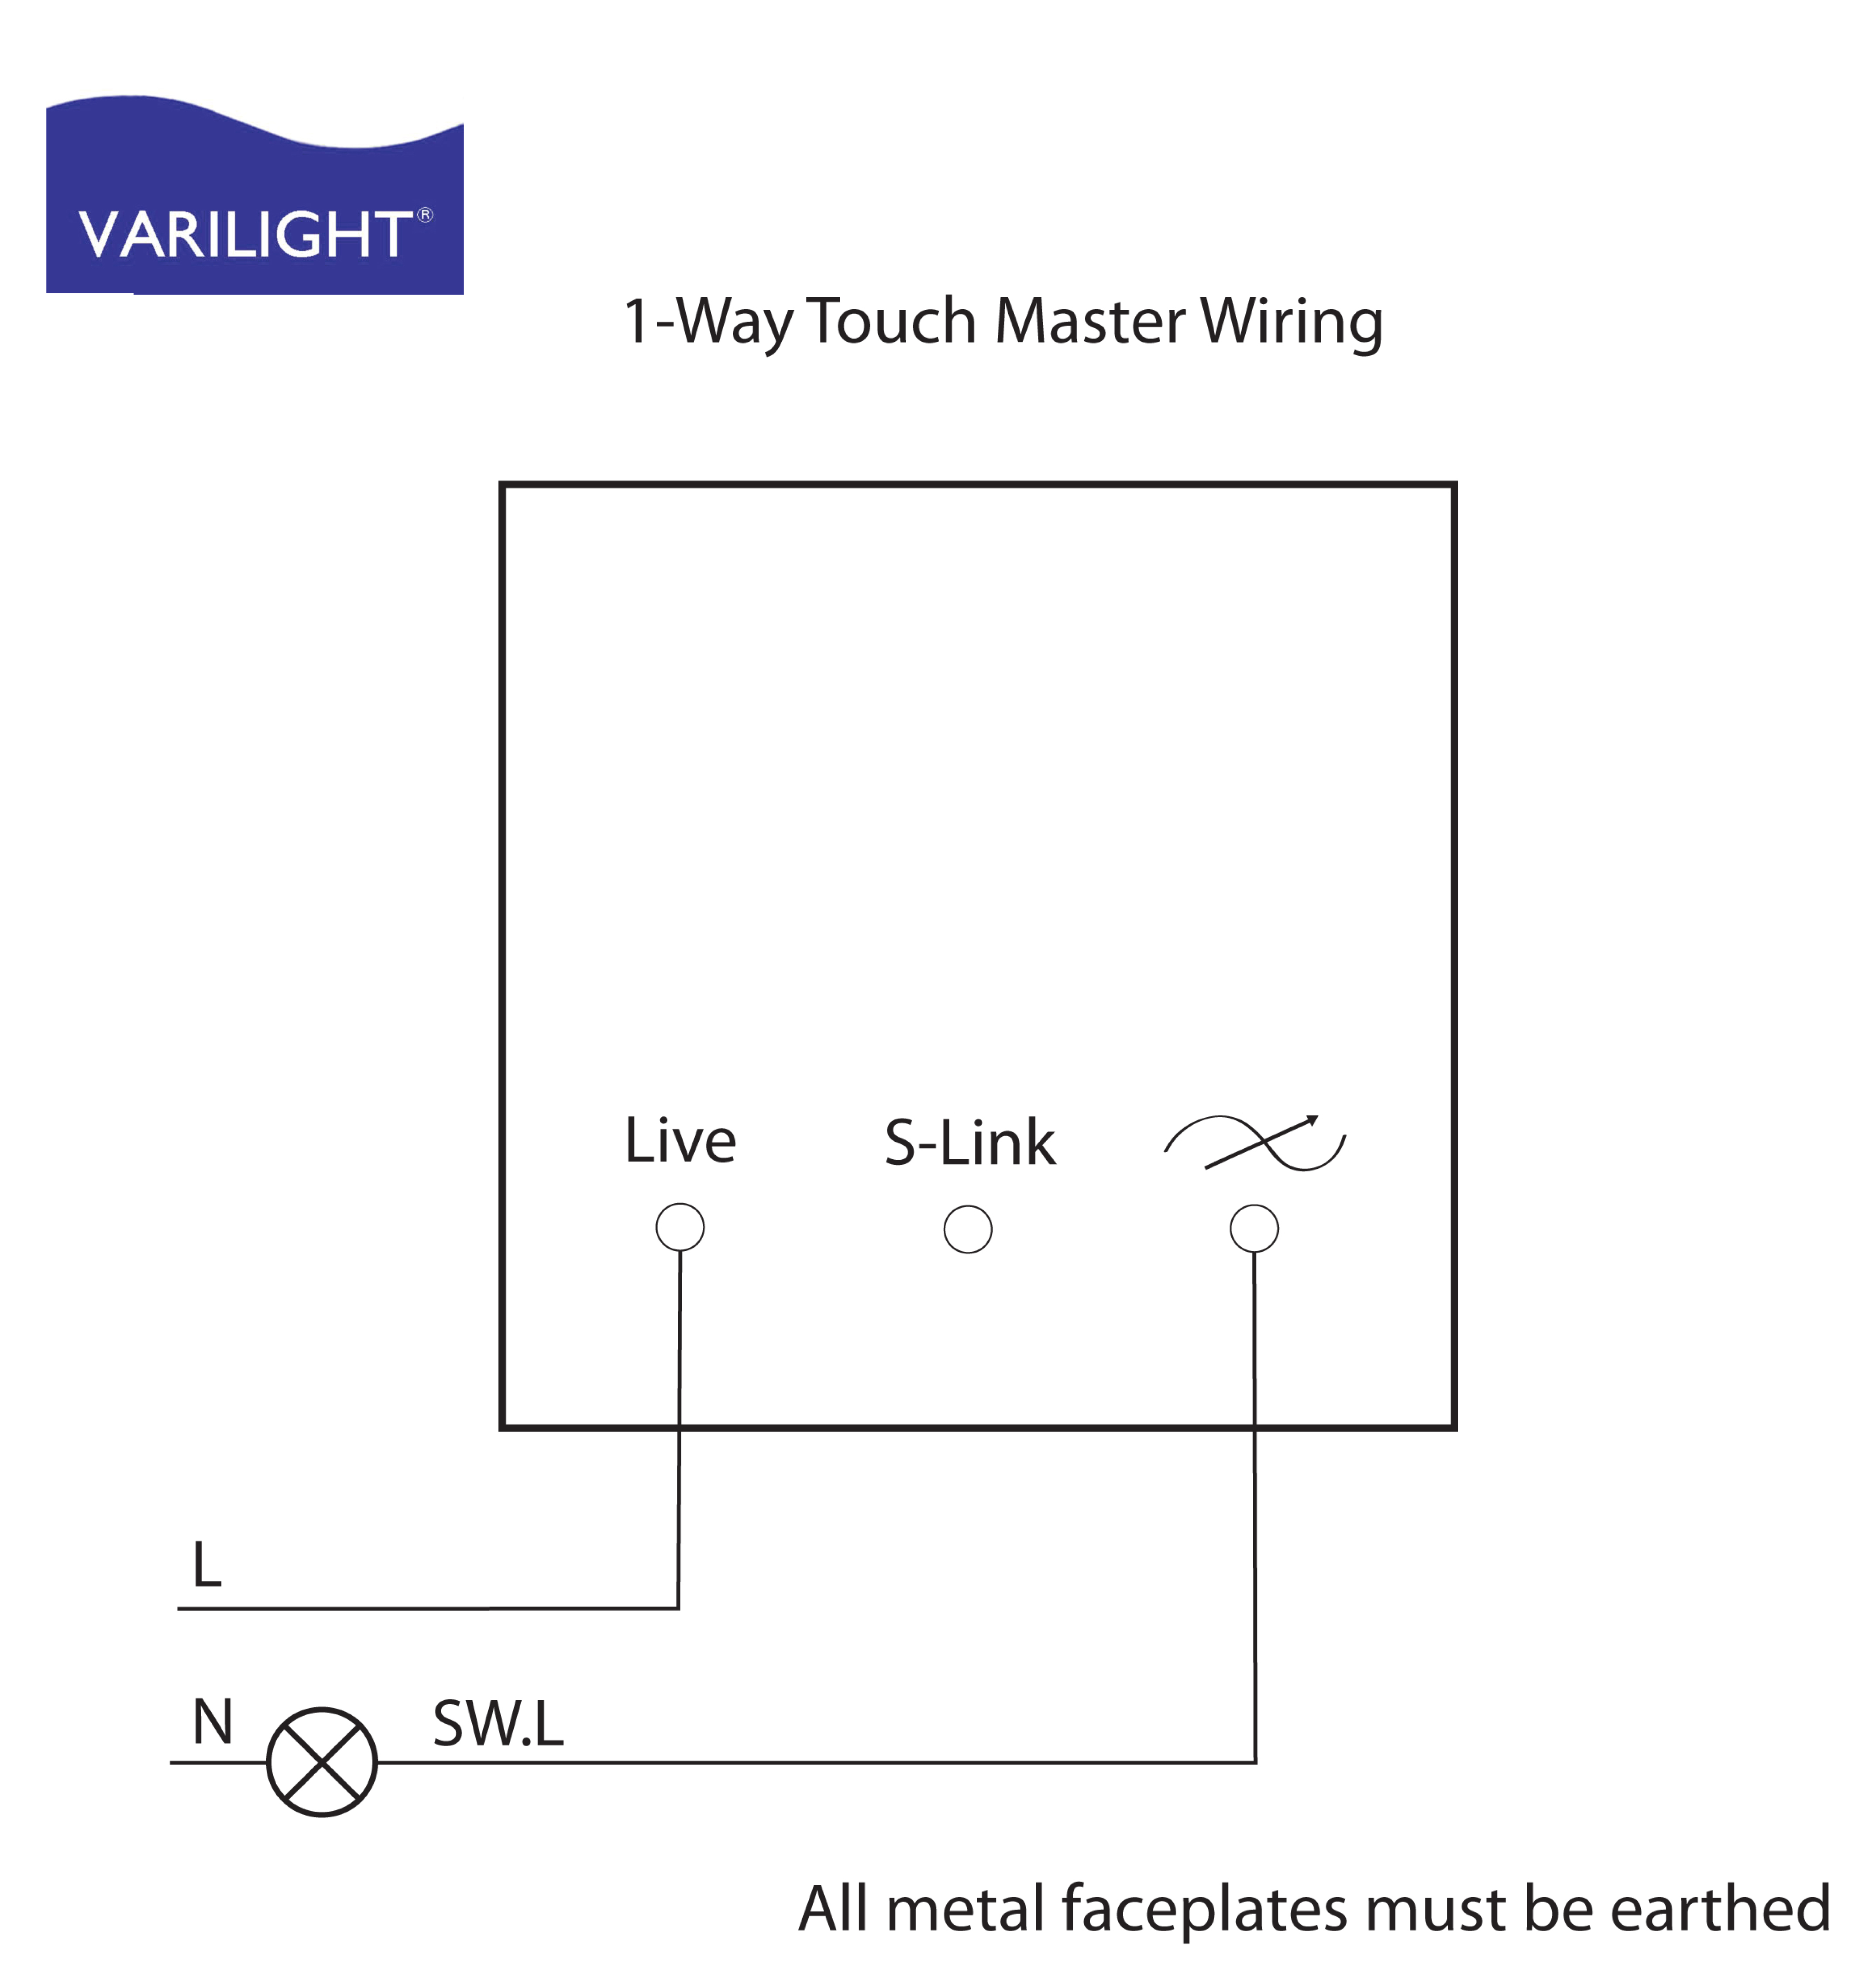 Varilight Wiring Diagrams - Dimmer Switch Wiring Diagram